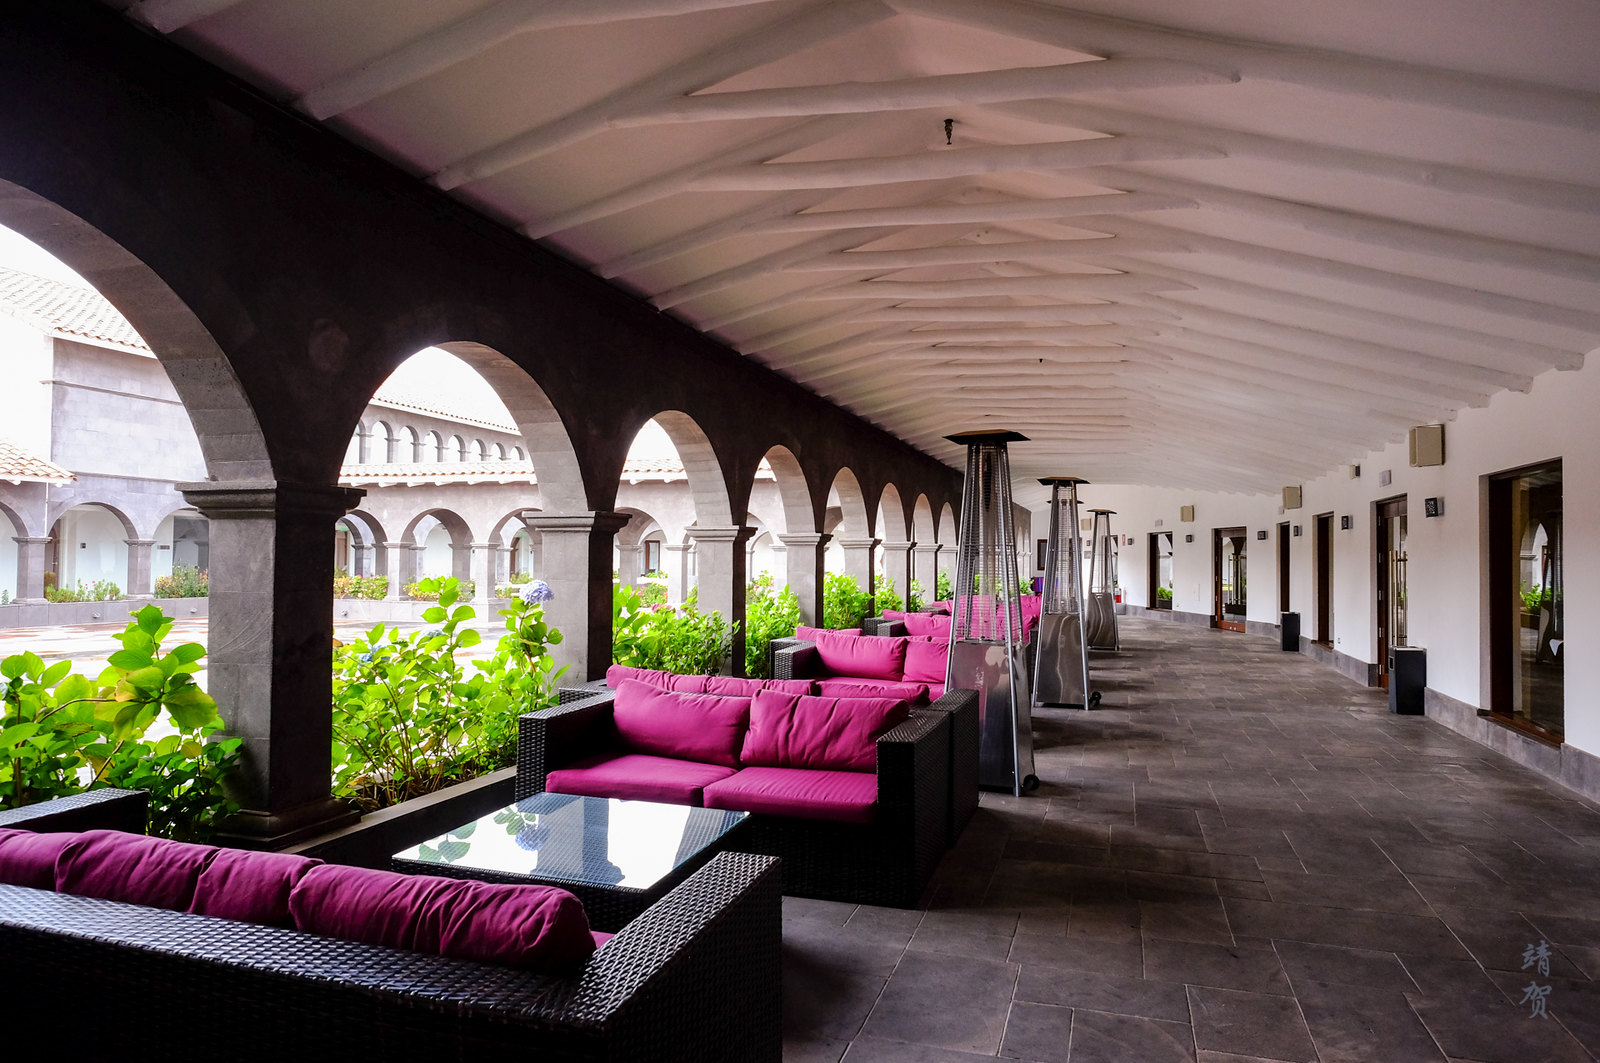 Seating by the courtyard